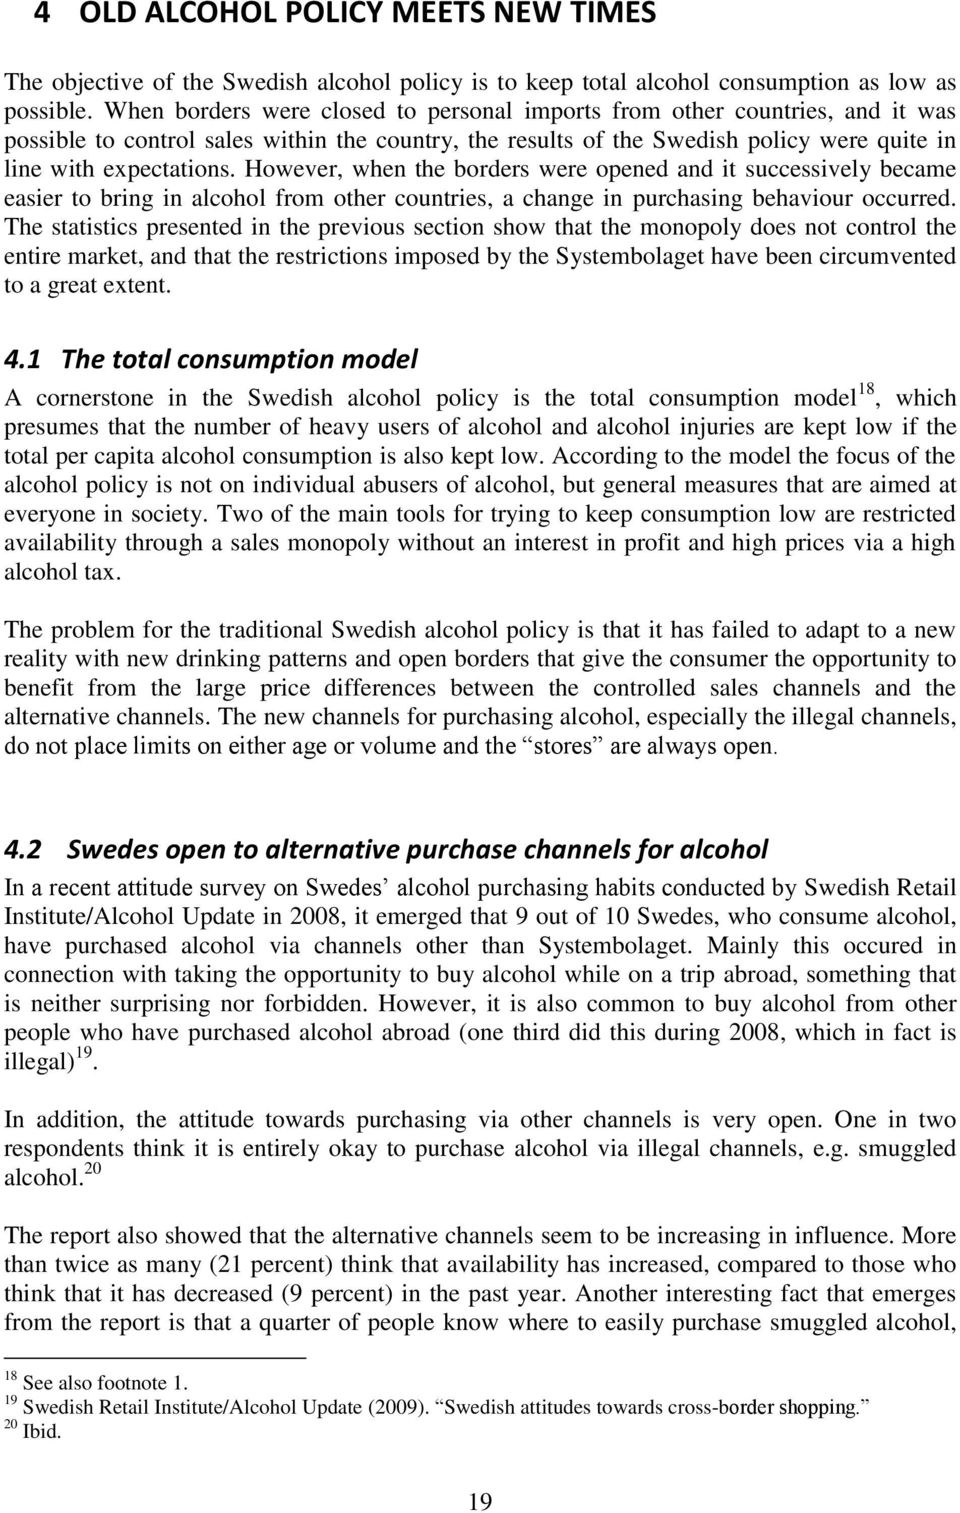 However, when the borders were opened and it successively became easier to bring in alcohol from other countries, a change in purchasing behaviour occurred.